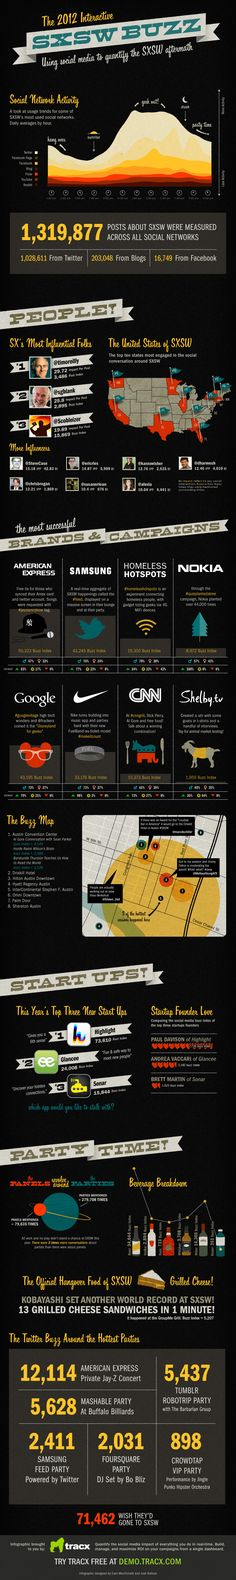 SXSW BUZZ Social Network Activity Inphographic